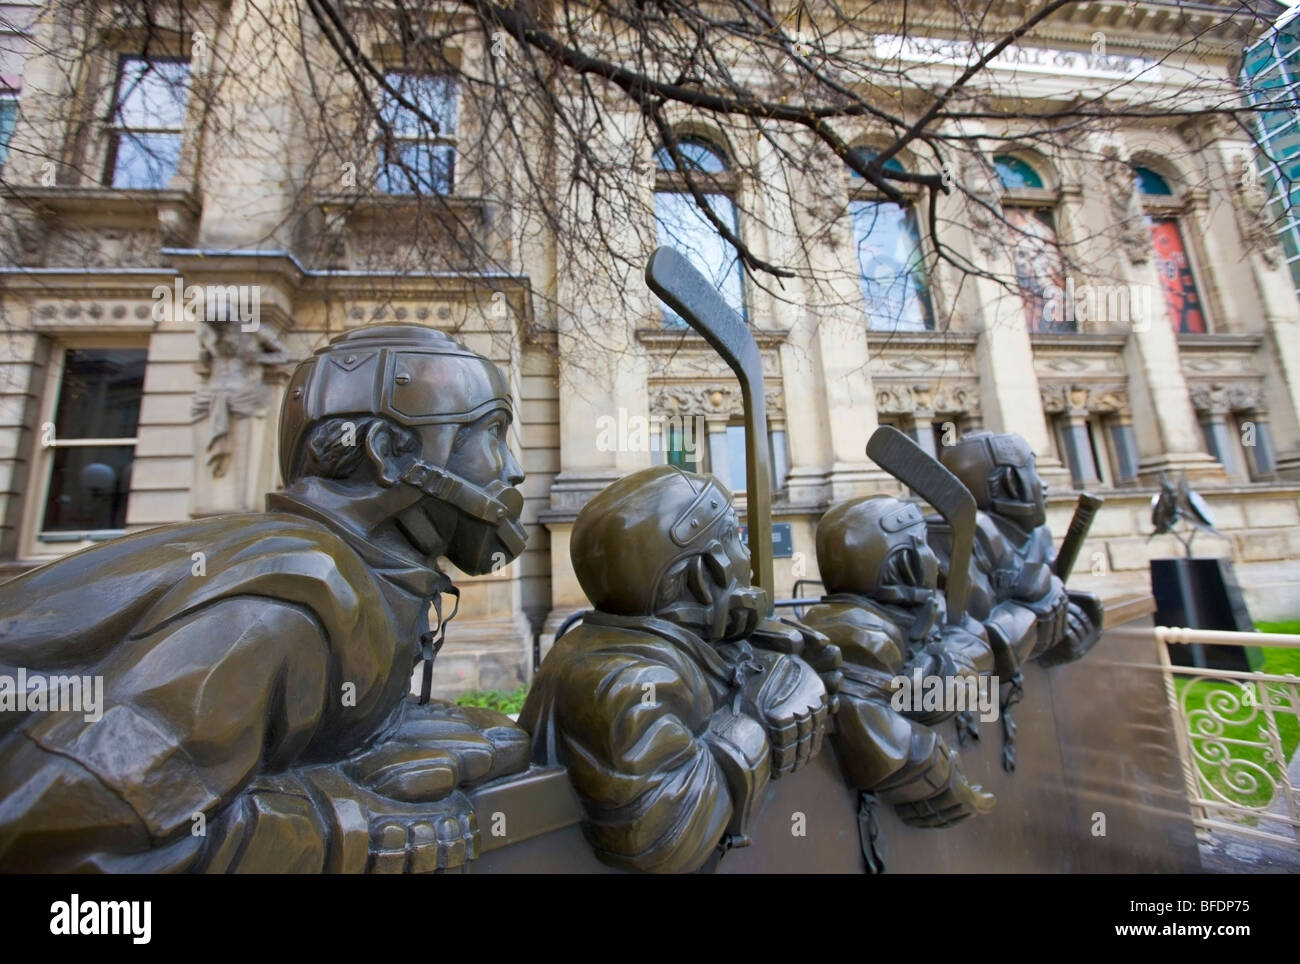 Bronze sculpture 'Our Game' outside the Hockey Hall of Fame, downtown Toronto, Ontario, Canada - Stock Image